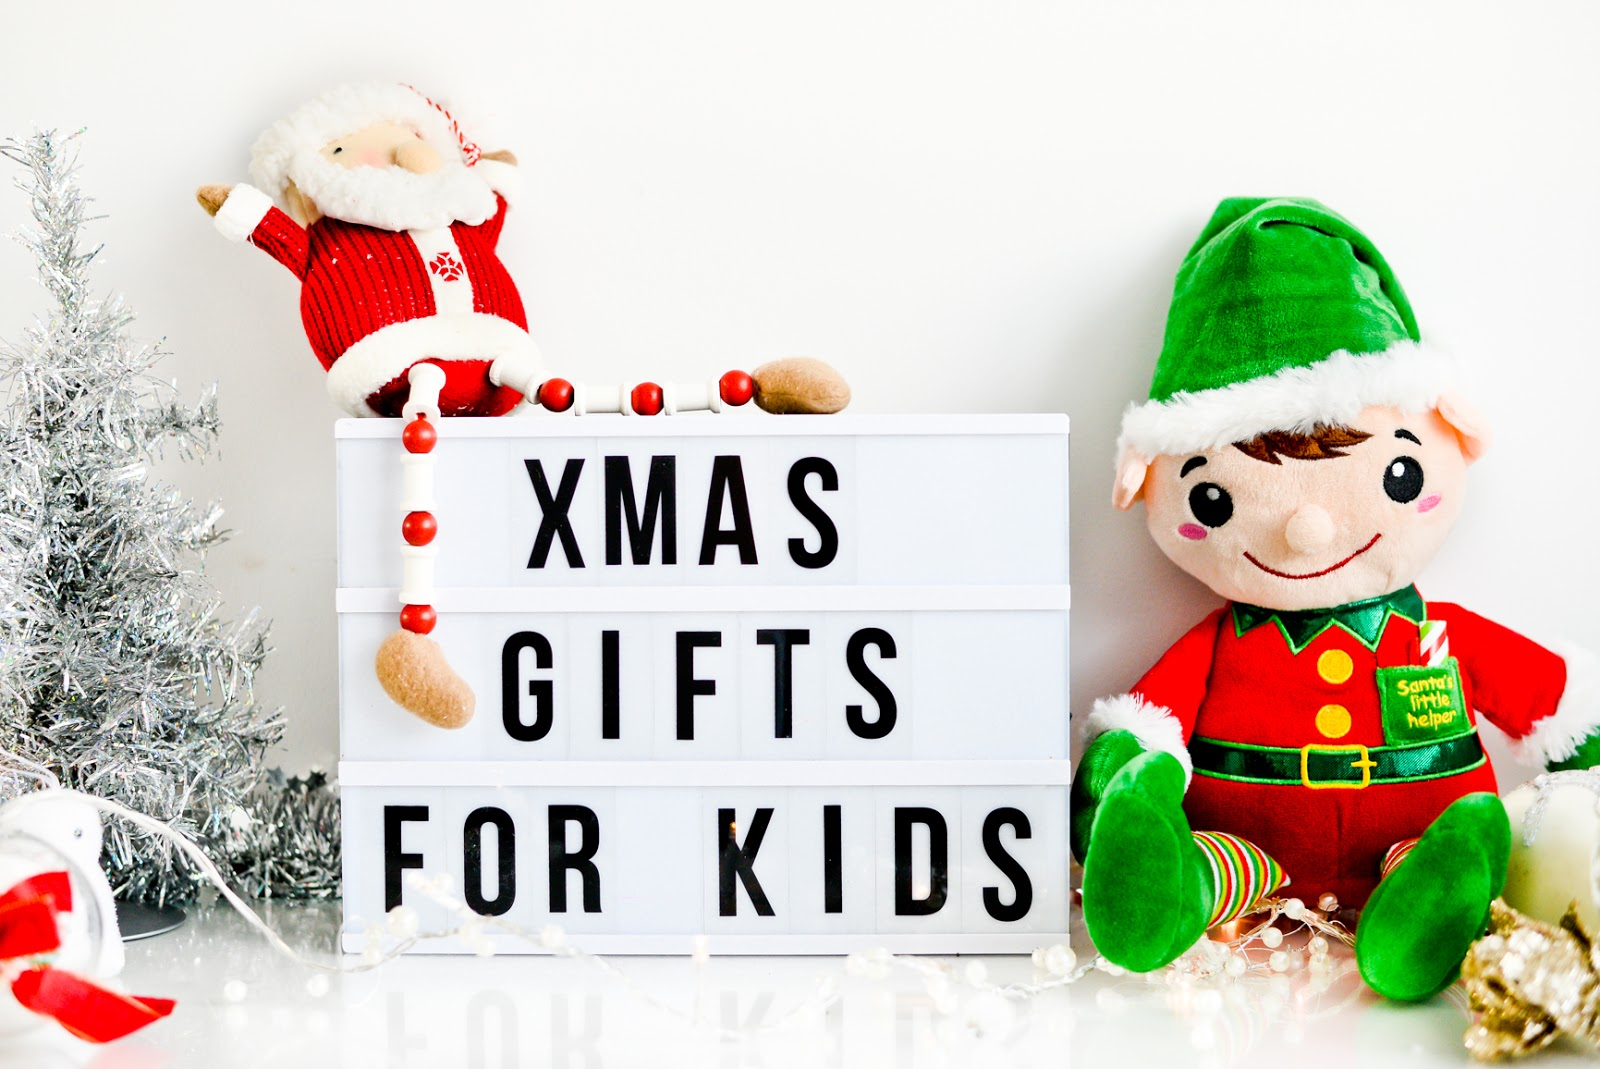 kids gift ideas, kids christmas gift ideas, present ideas for a 2 year old, present idea for for 4 year old